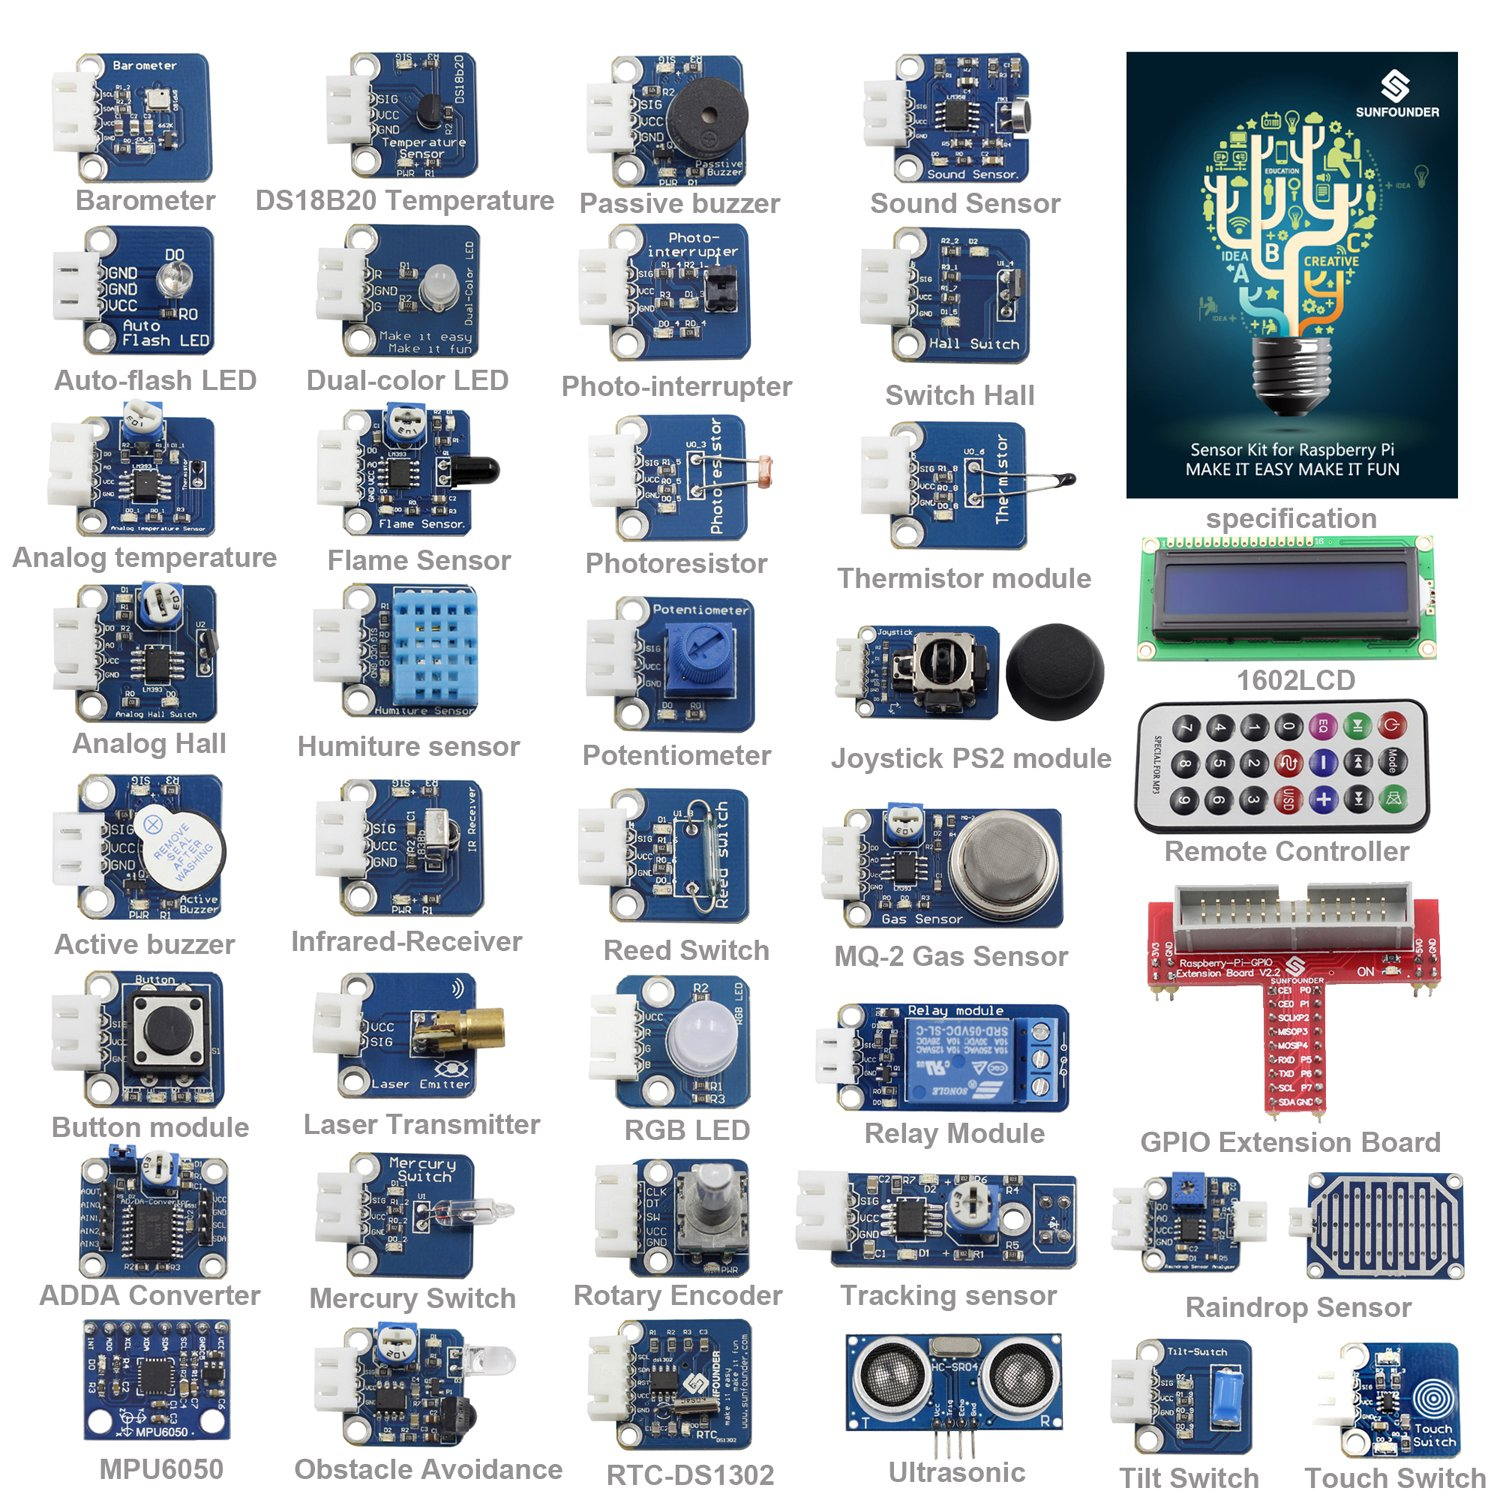 SunFounder 37 Modules Sensor Kit V2.0 for Raspberry Pi RPi 1 Model B, 26-Pin GPIO Extension Board Jump wires